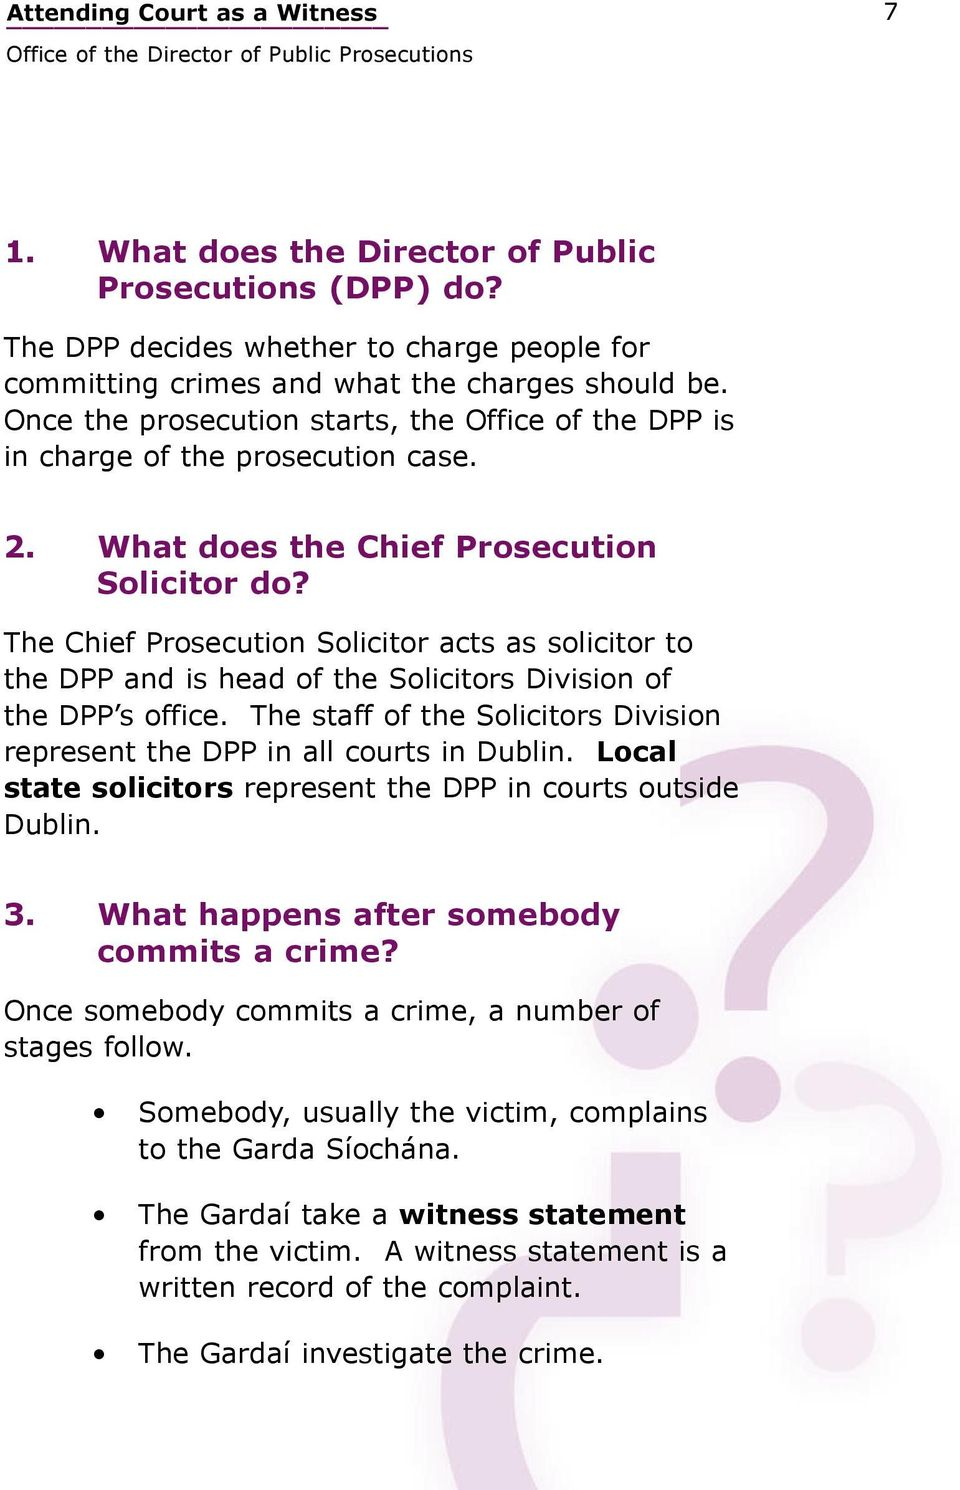 The Chief Prosecution Solicitor acts as solicitor to the DPP and is head of the Solicitors Division of the DPP s office. The staff of the Solicitors Division represent the DPP in all courts in Dublin.